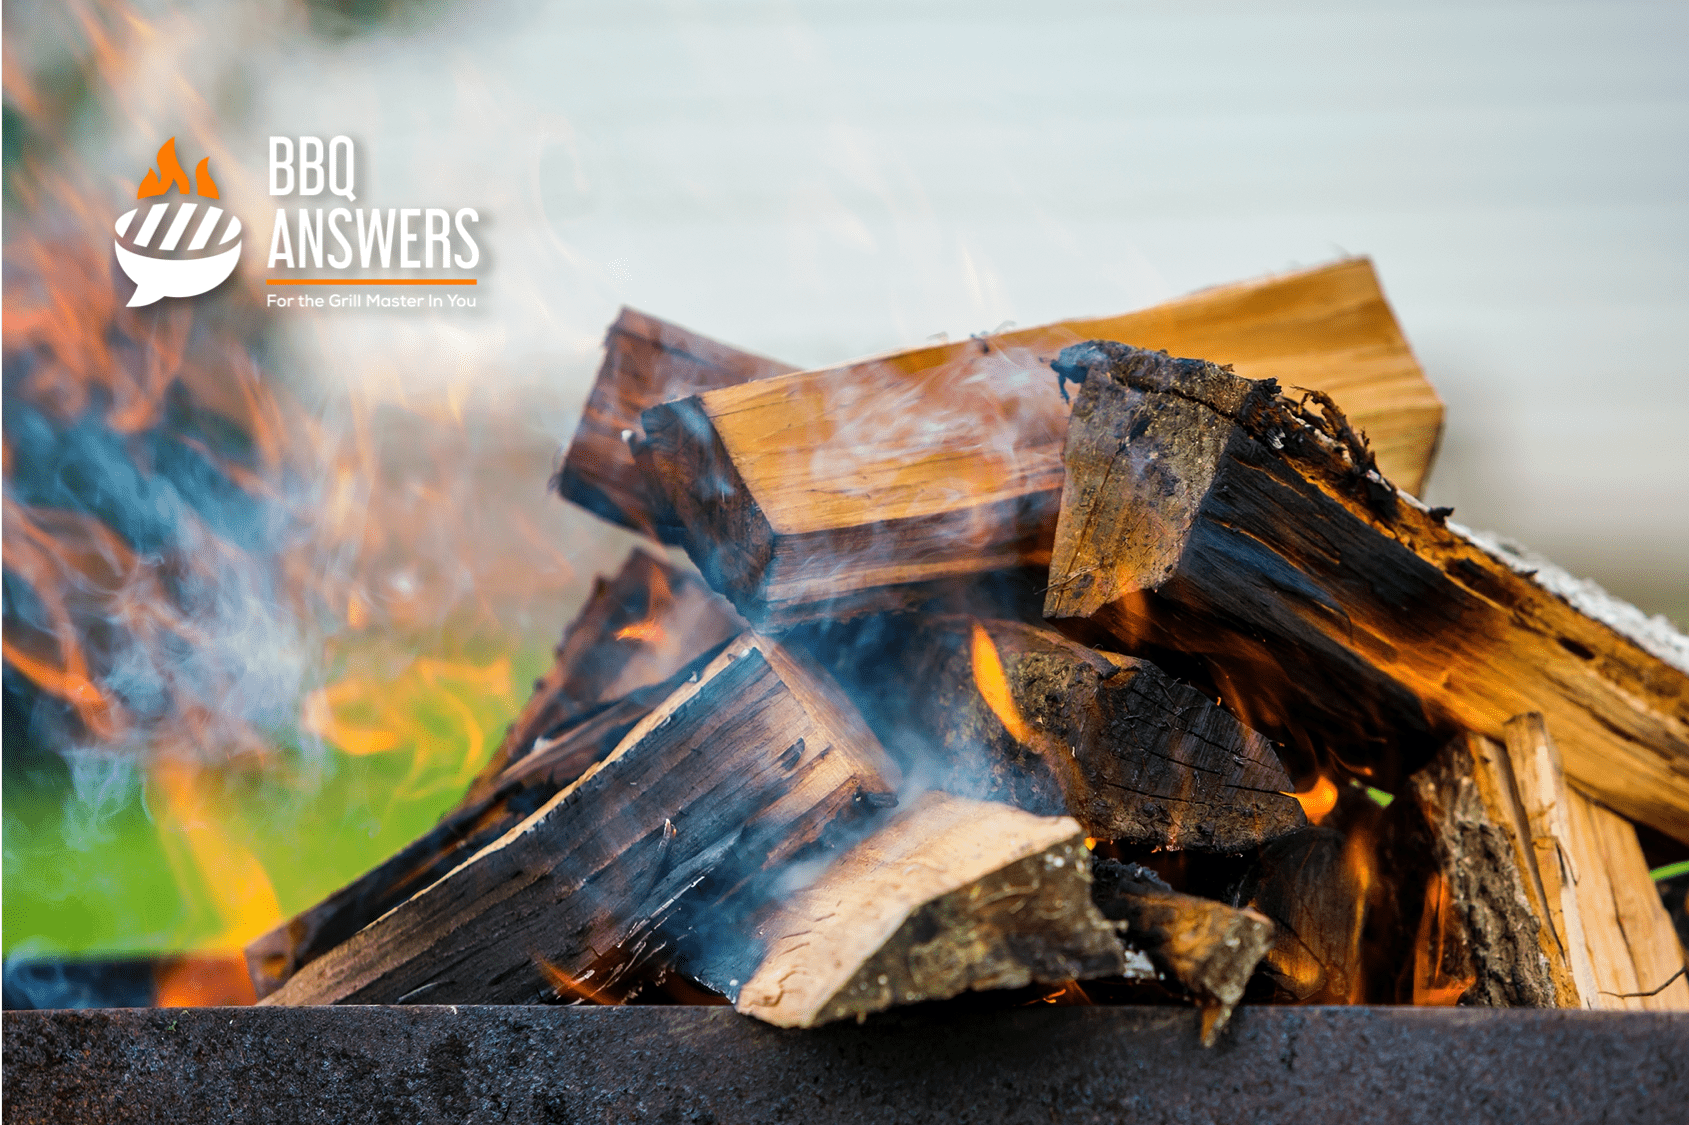 Wood as Primary Source of Fuel | BBQanswers